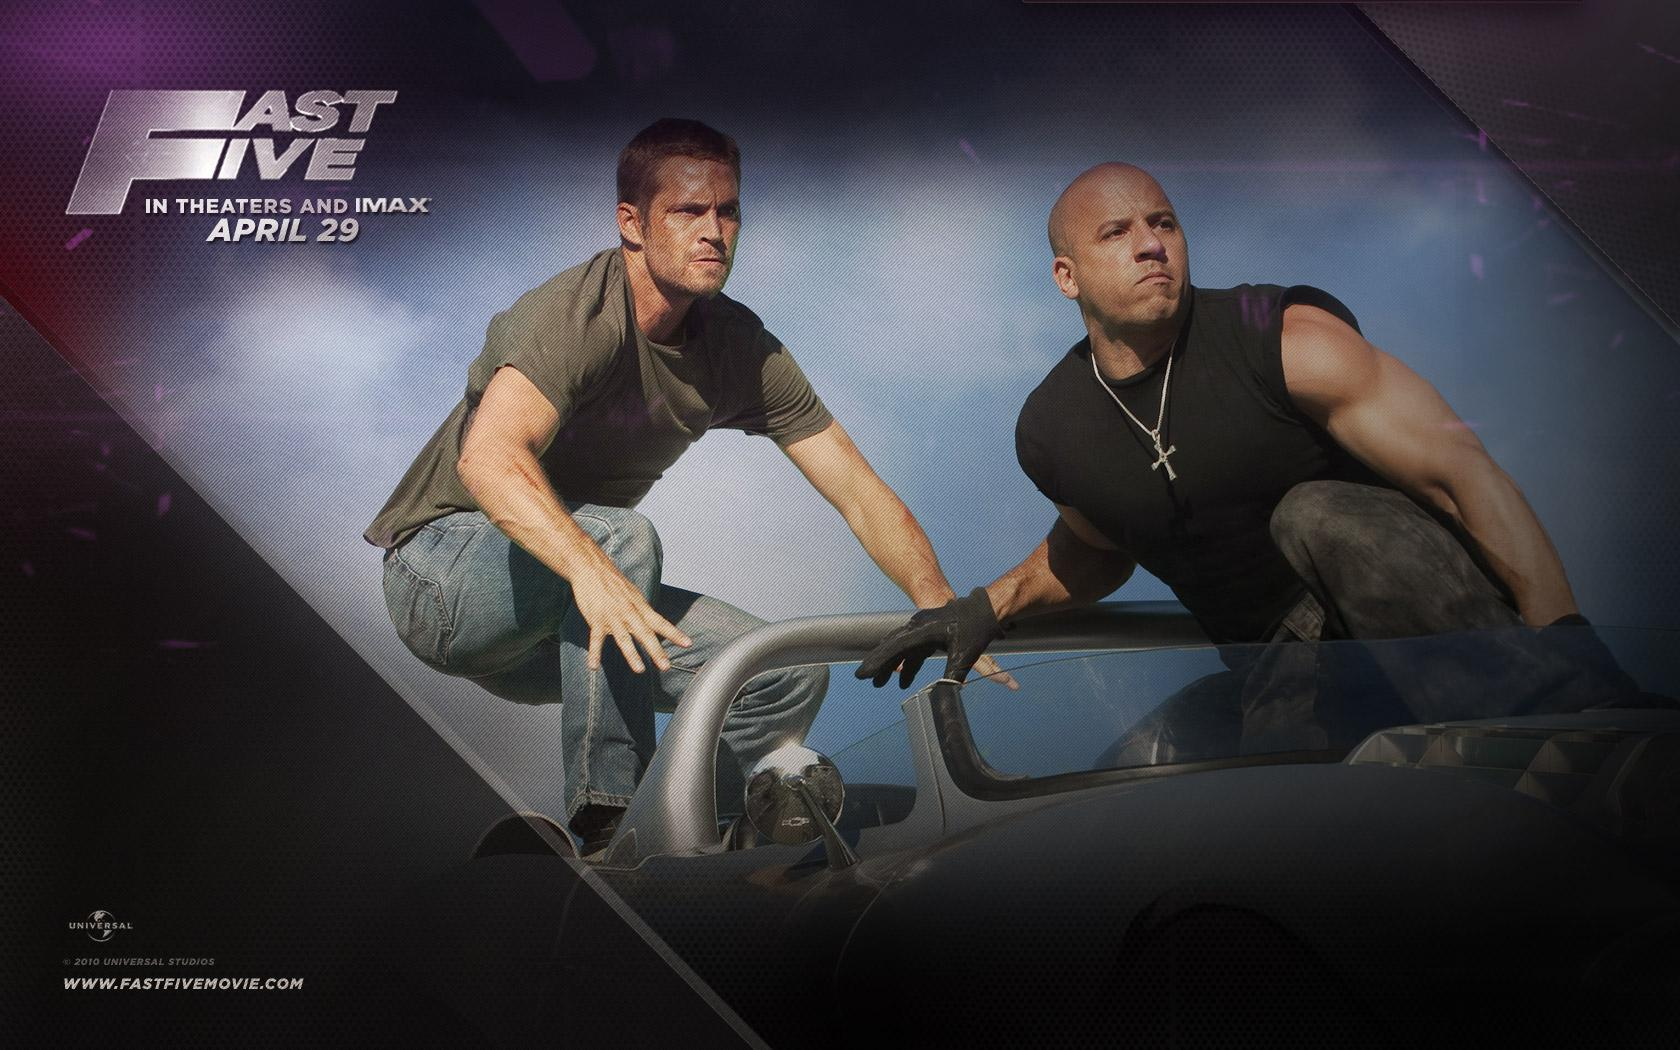 the fast and furious 5 full movie in hindi download